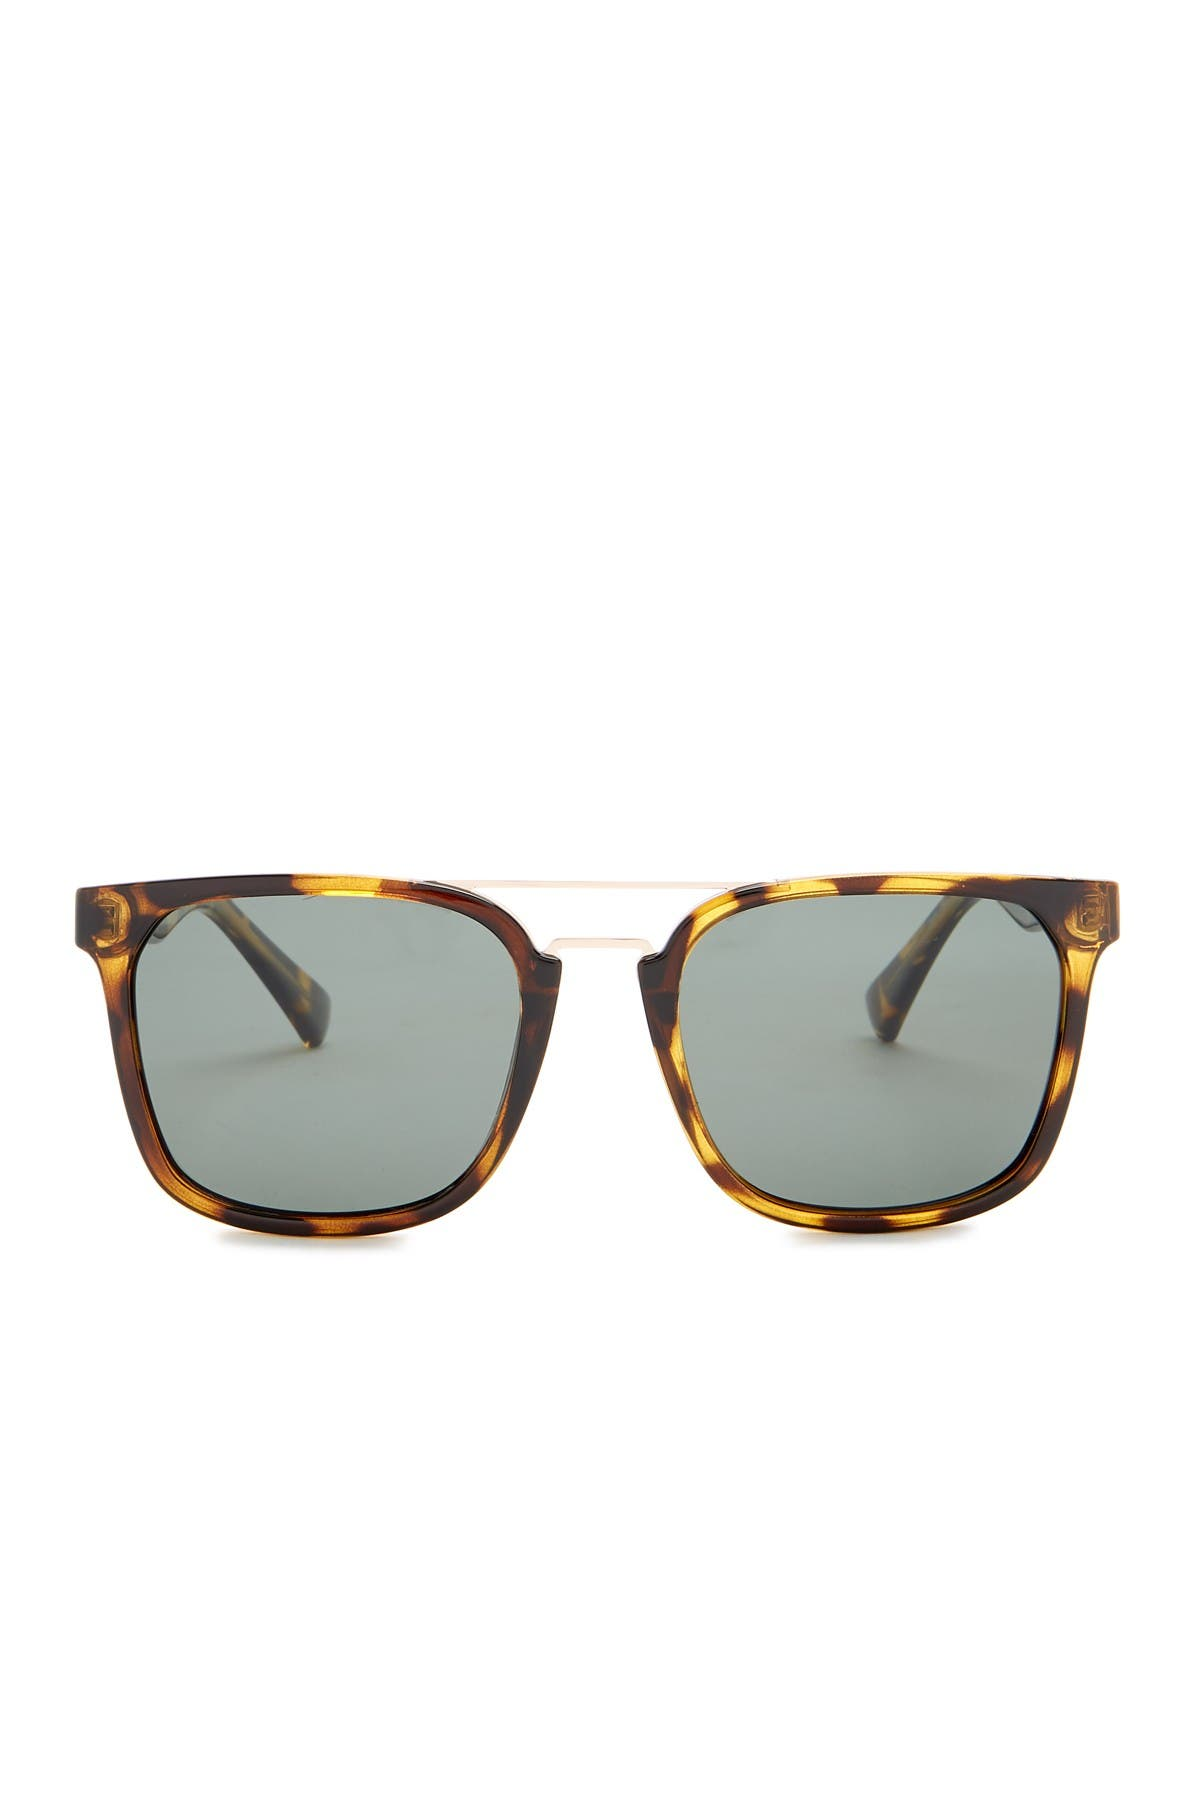 Image of Cole Haan 54mm Browbar Sunglasses